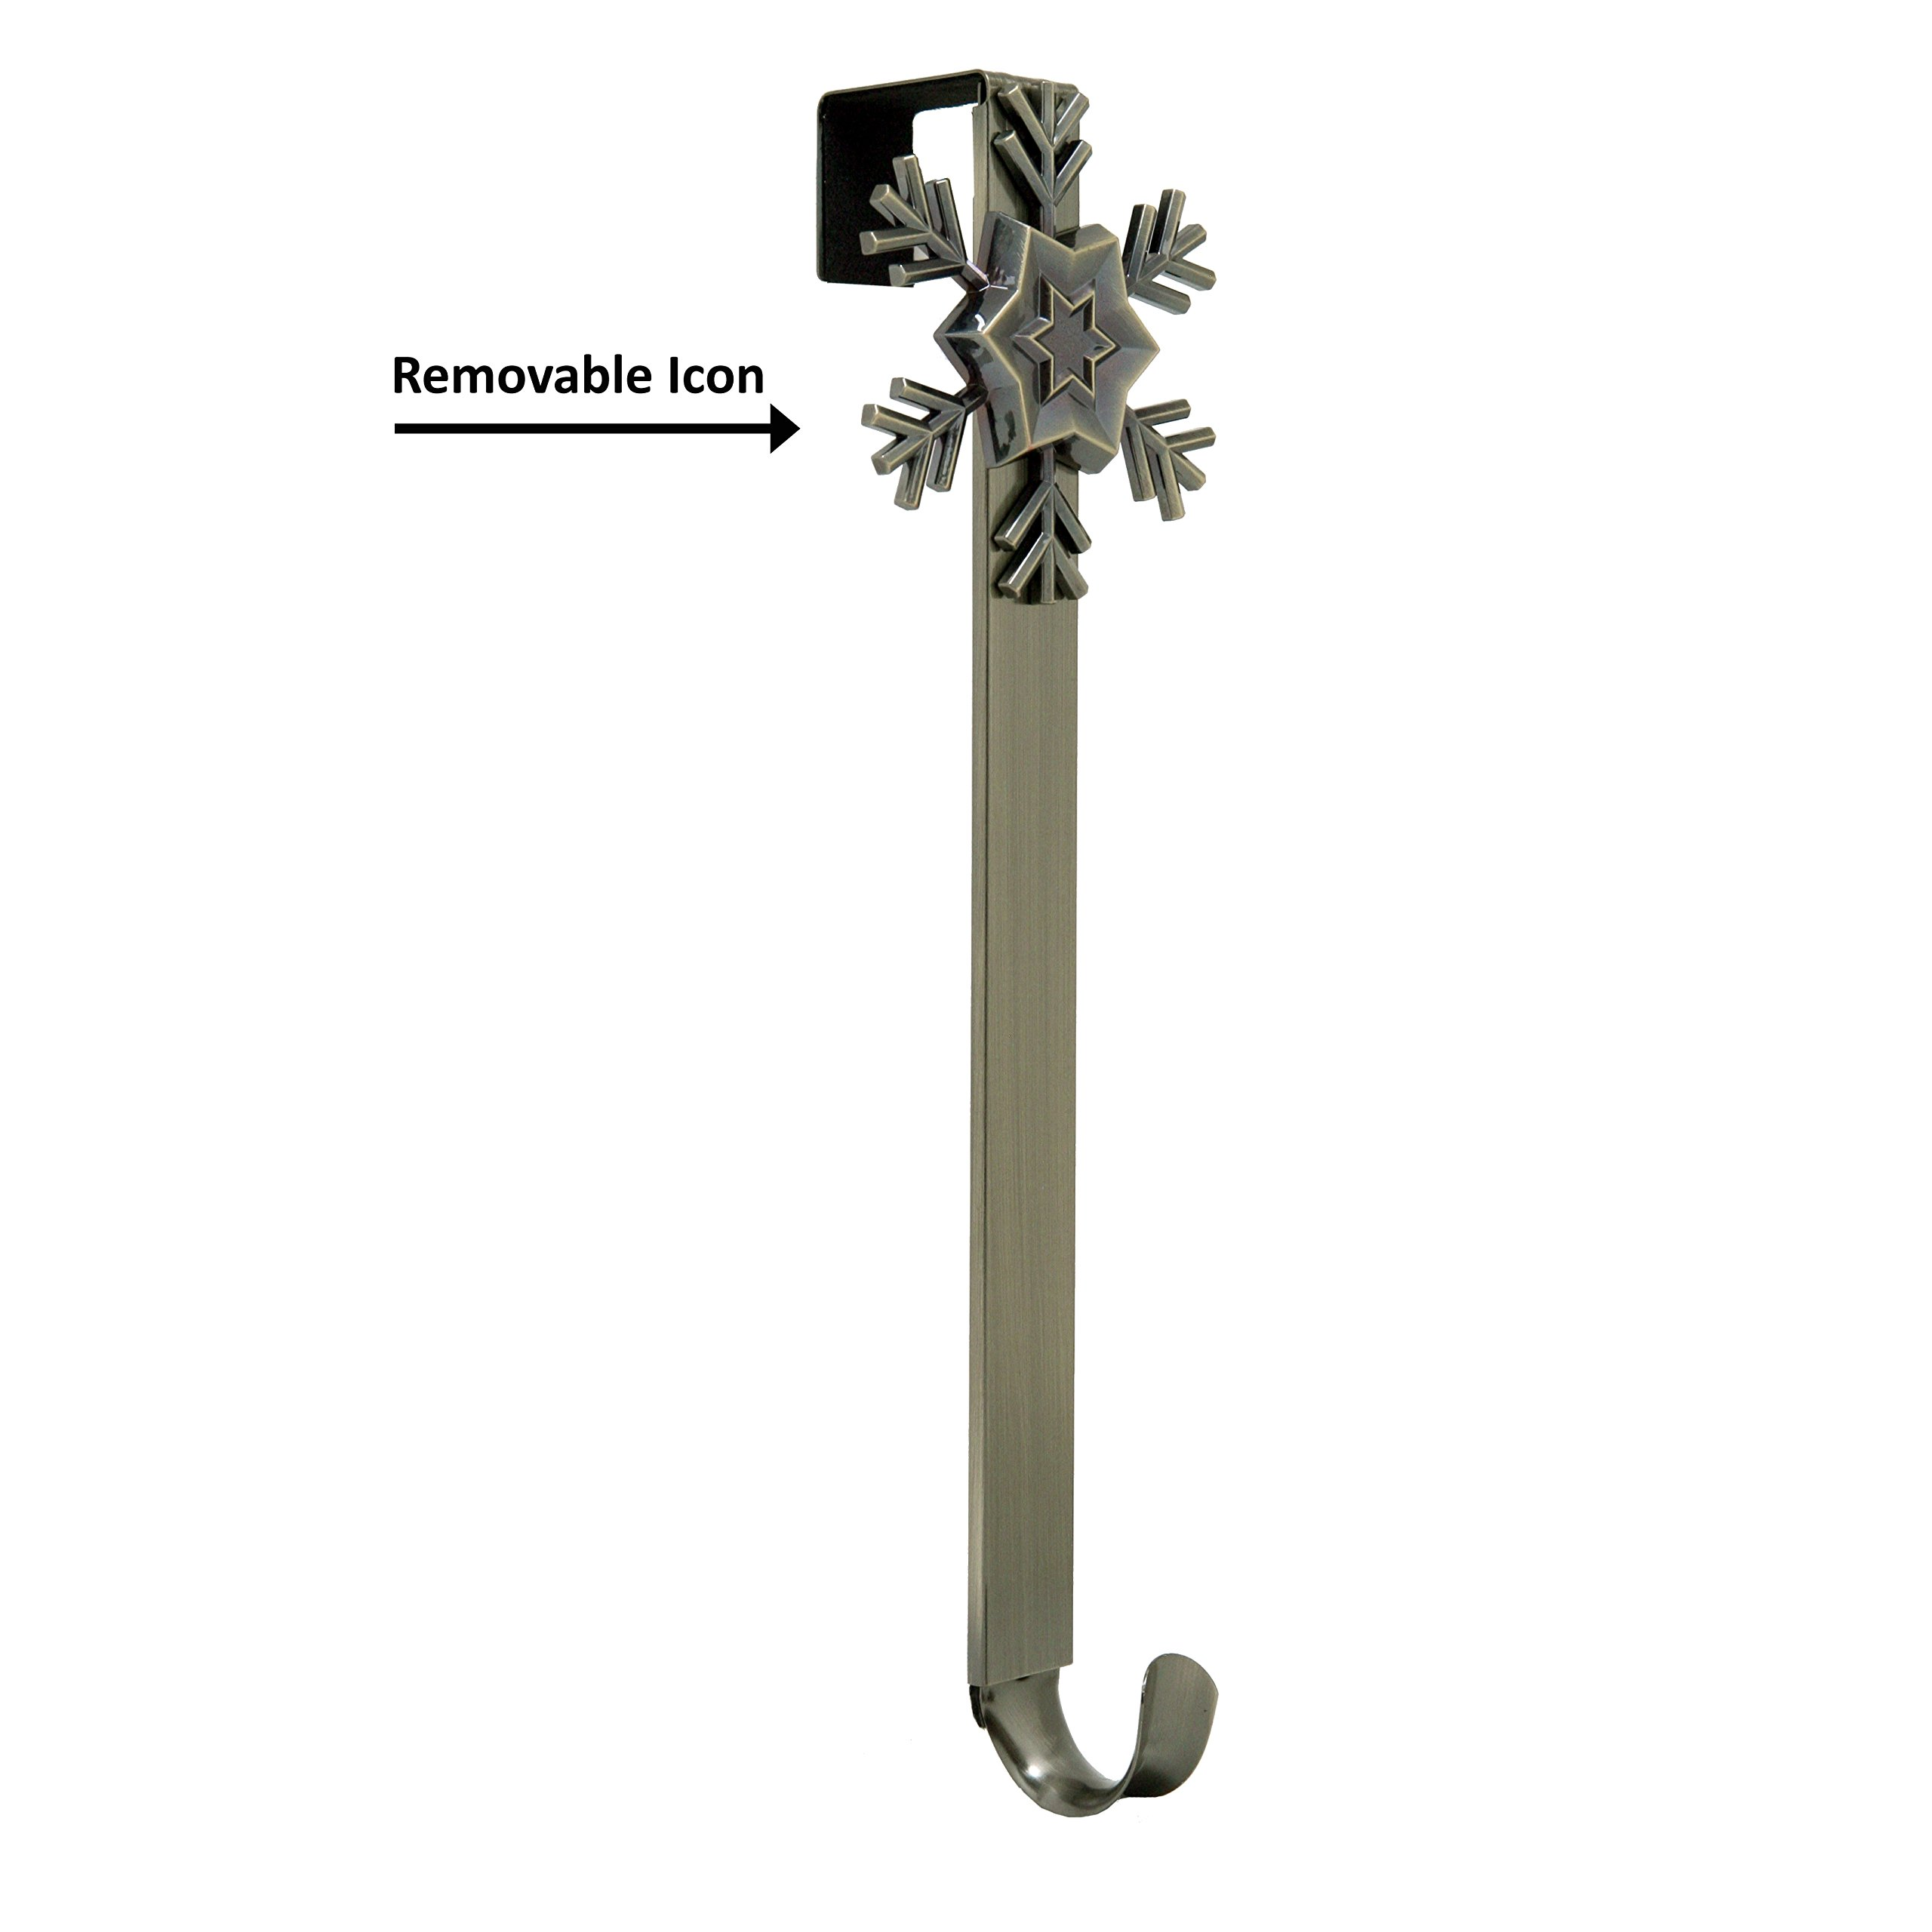 Adjustable Length Wreath Hanger with Removable Icon (Antique Brass - Snowflake)